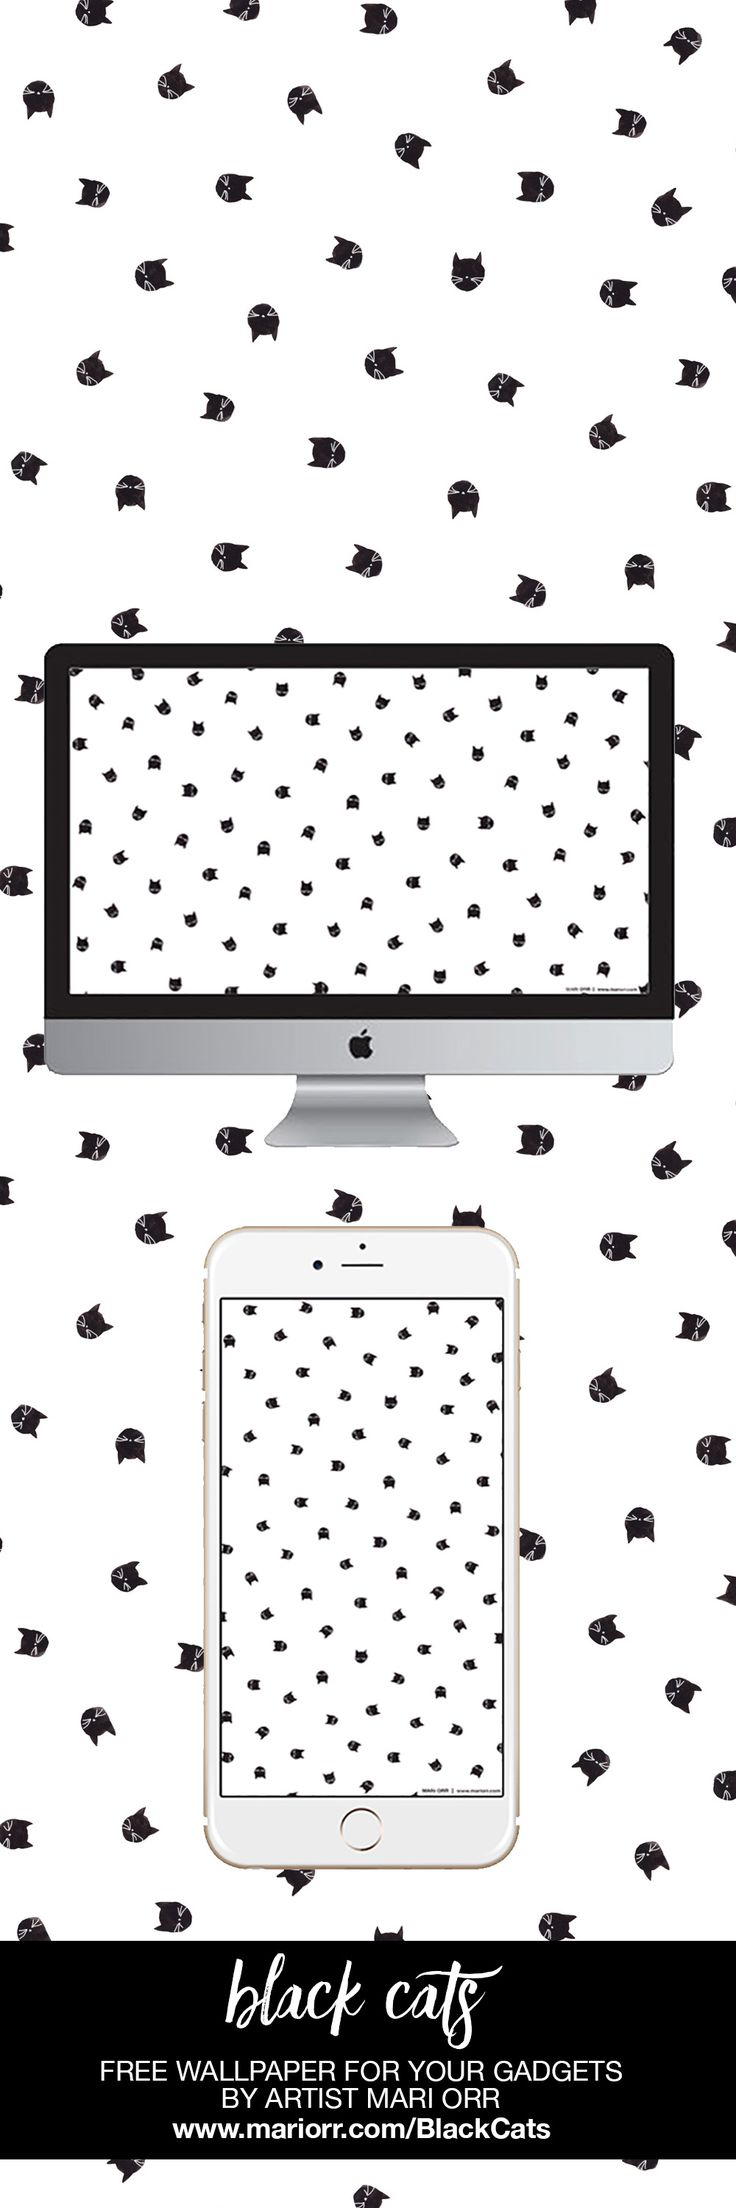 Halloween goodies! Adorable painted watercolor Black Cats wallpaper in a polka dot pattern ushers in October with a whimsical MEOW. Button nose and whiskers included. Free wallpaper for desktop and phone.